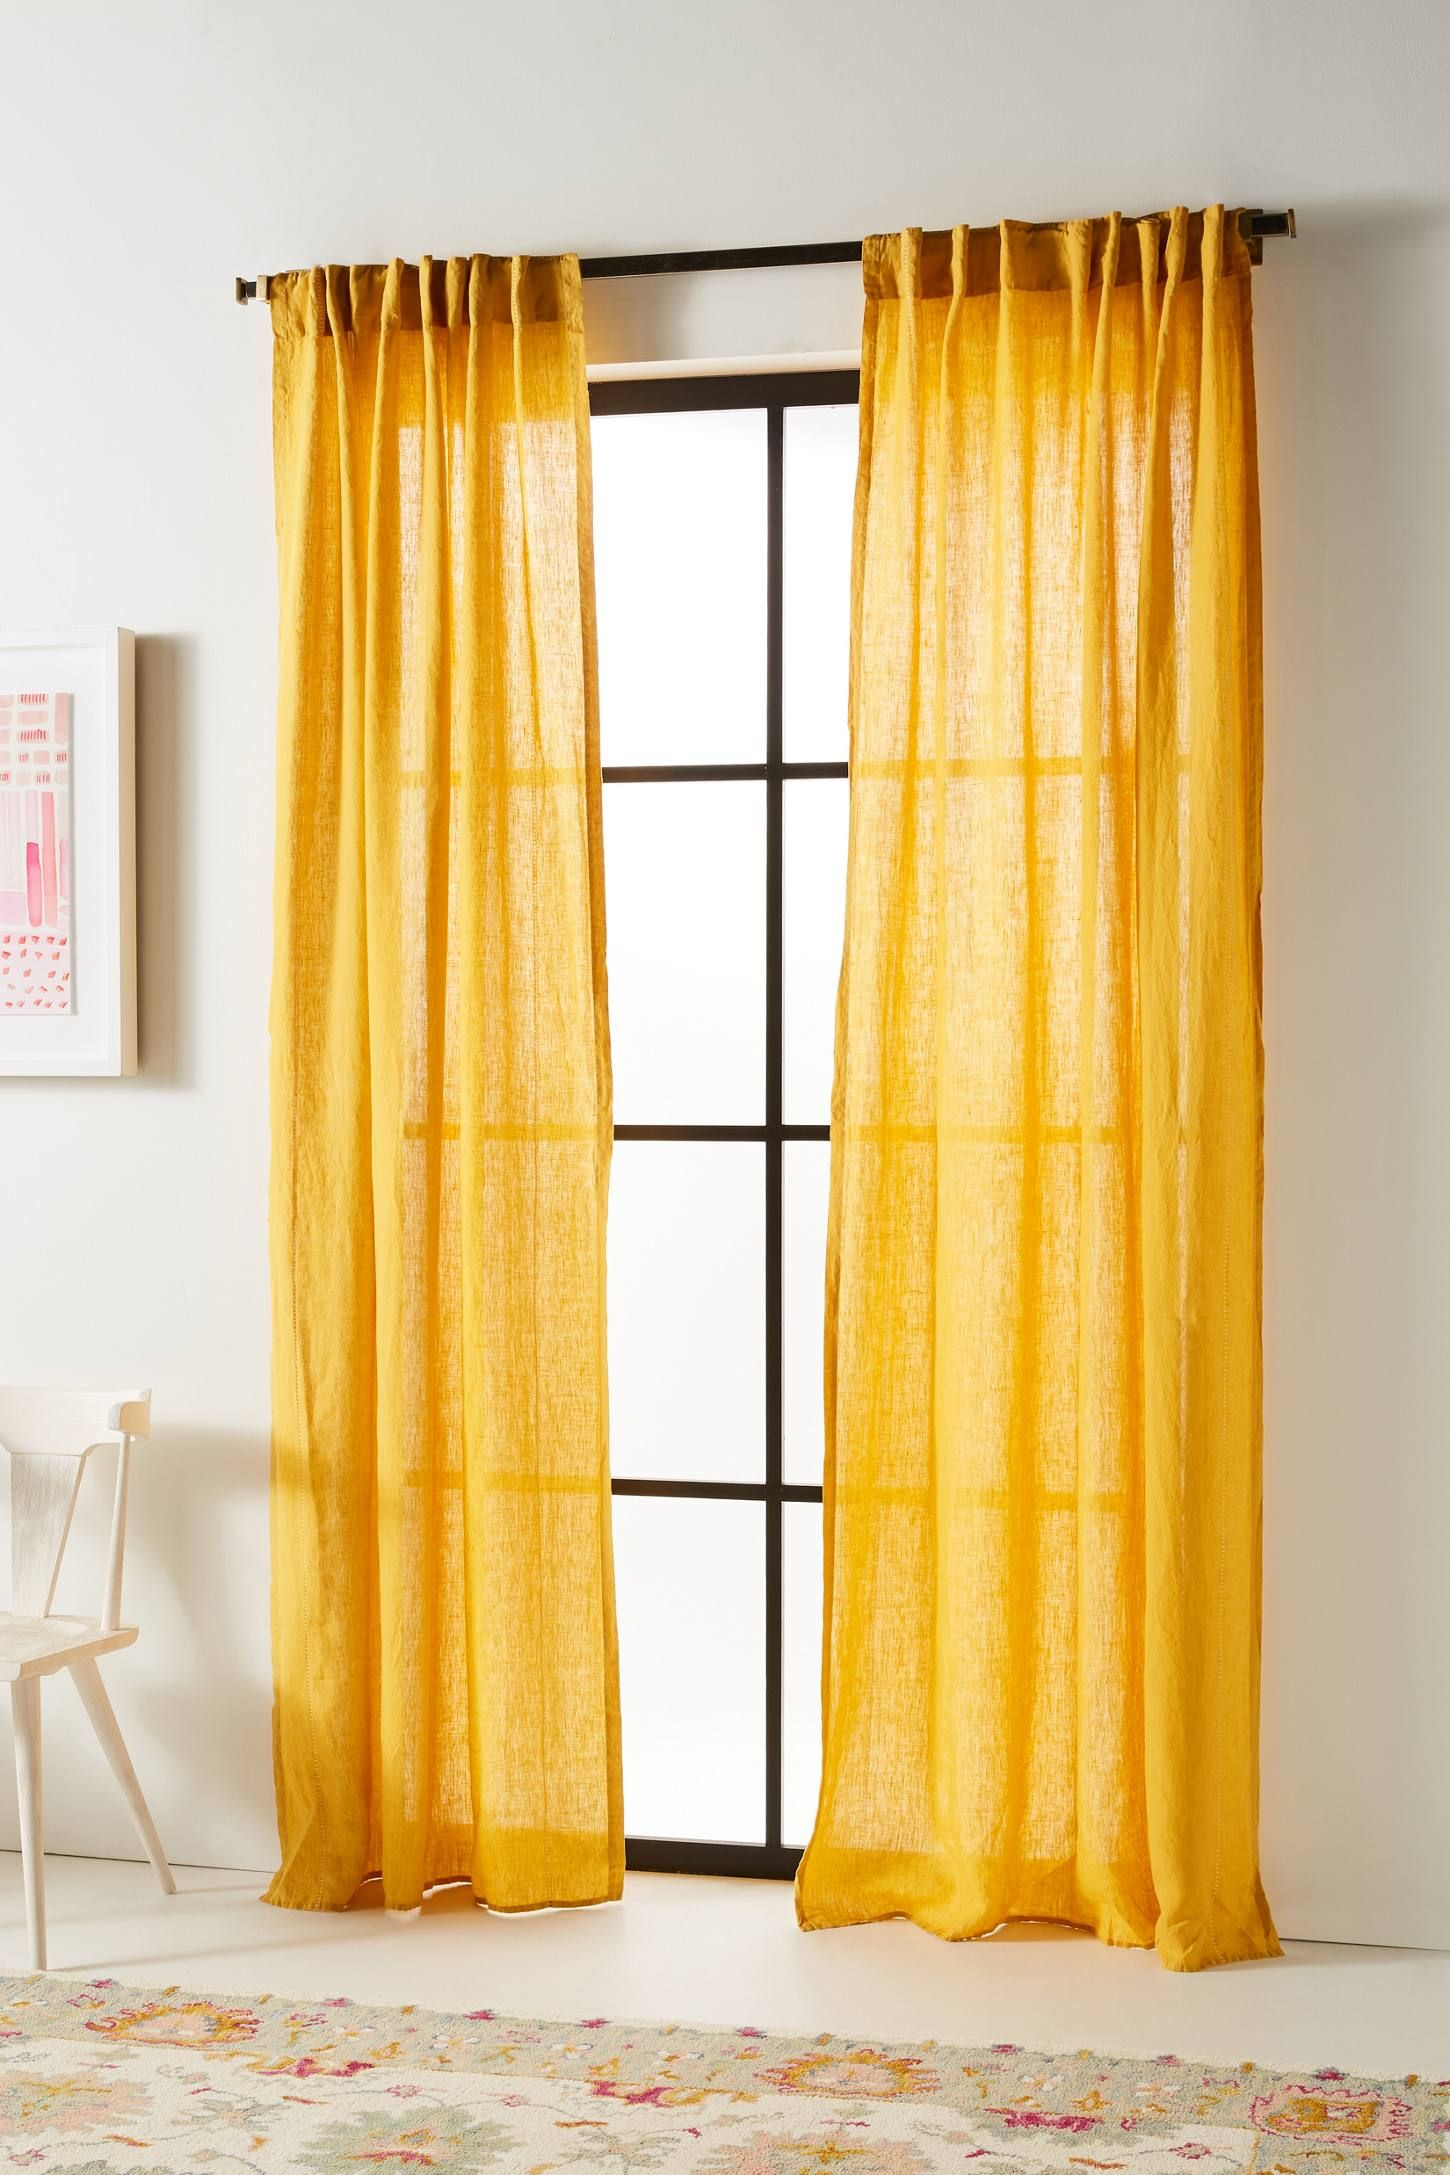 Stitched Linen Curtain In 2020 Yellow Bedroom Linen Curtains Romantic Yellow Bedroom